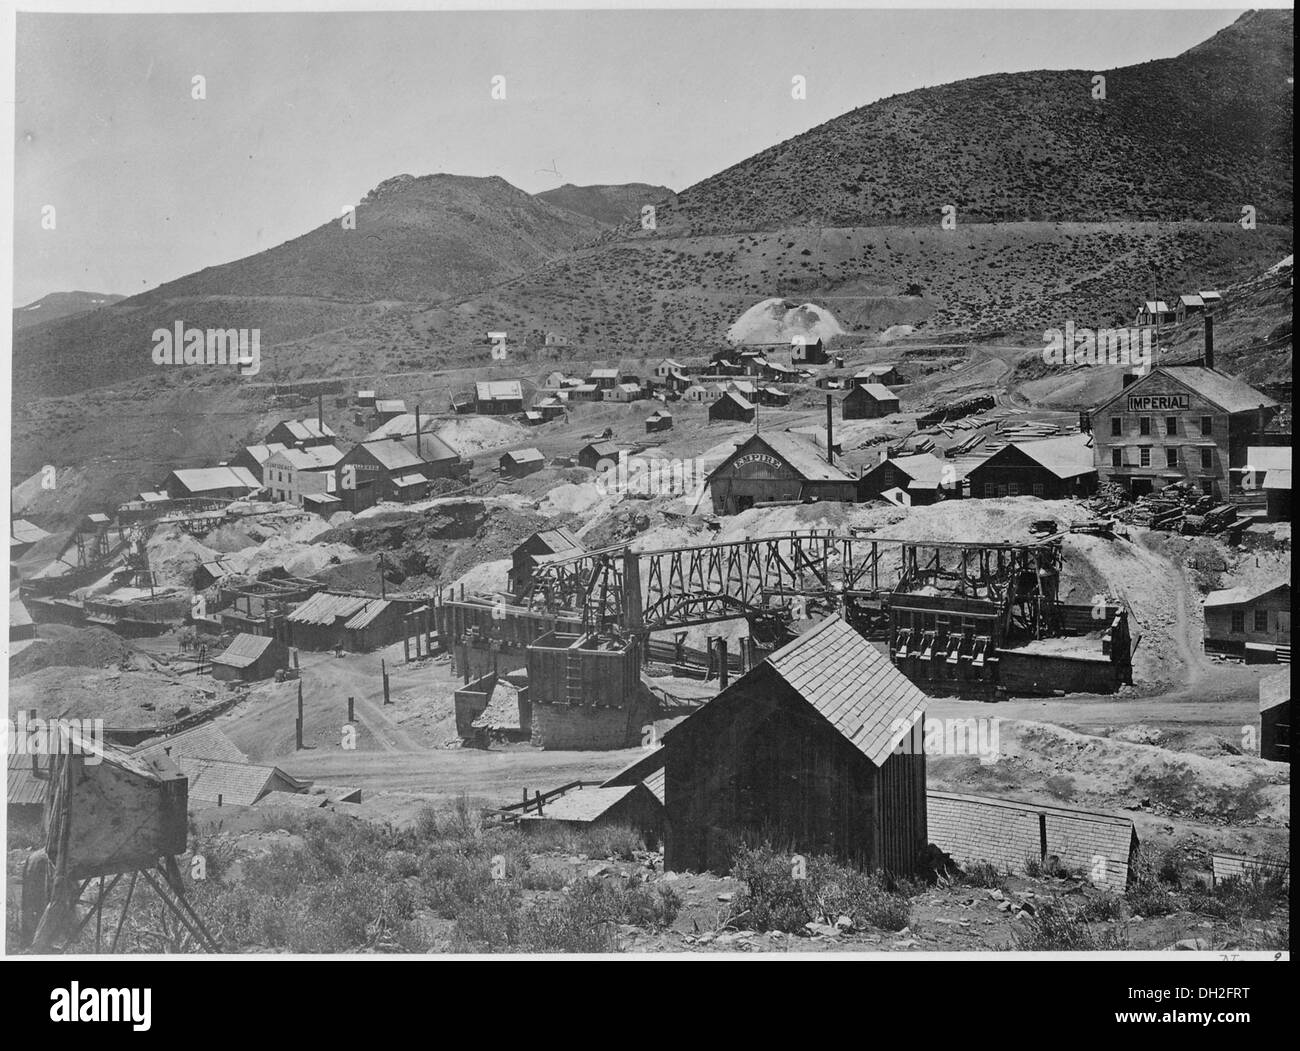 Gold Hill, Nevada 519506 - Stock Image